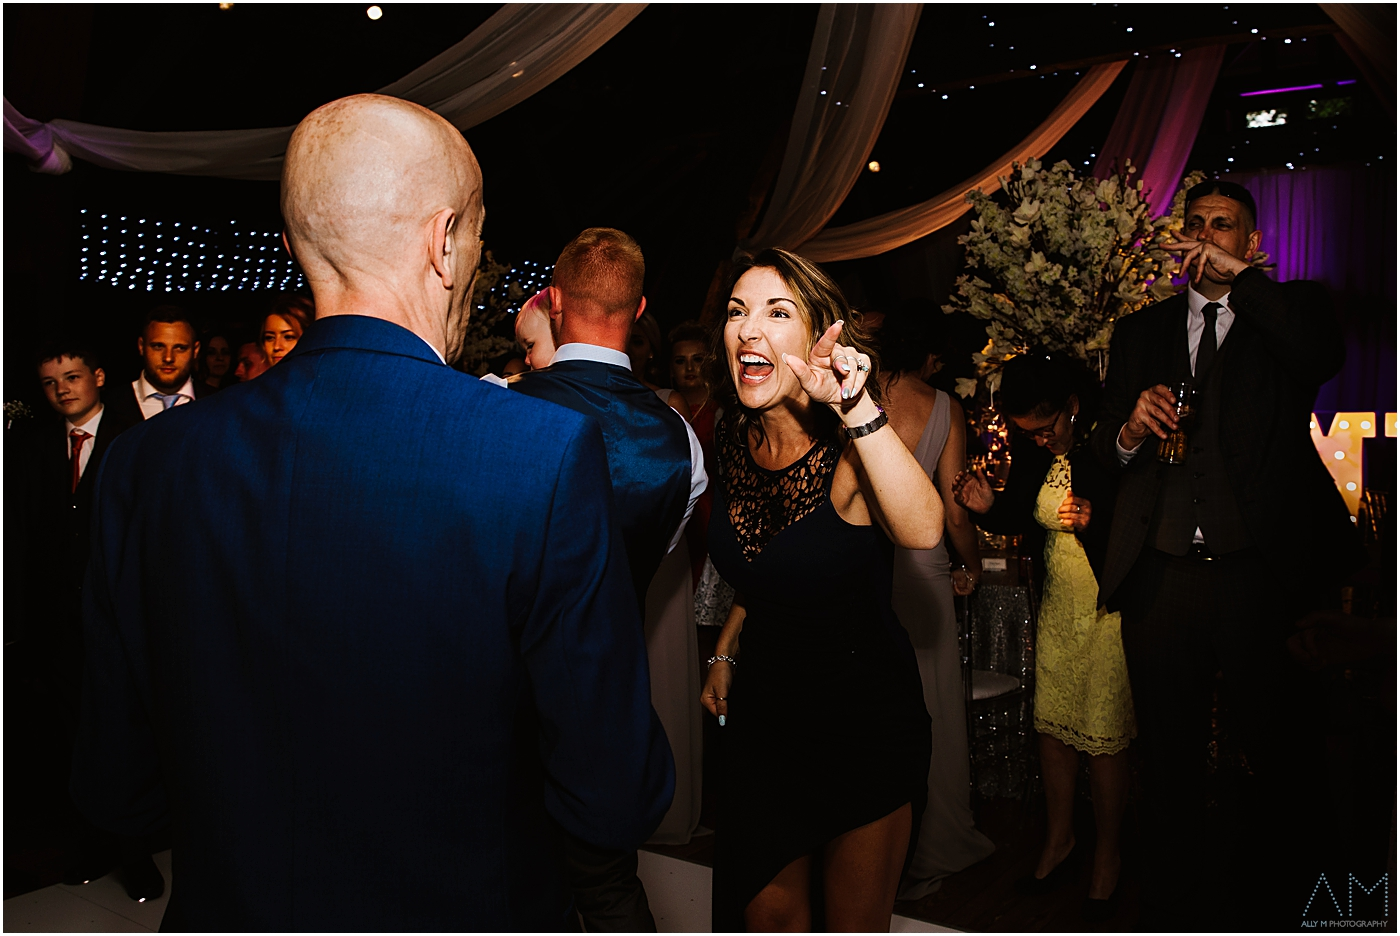 wedding guest pulling her face at her dad